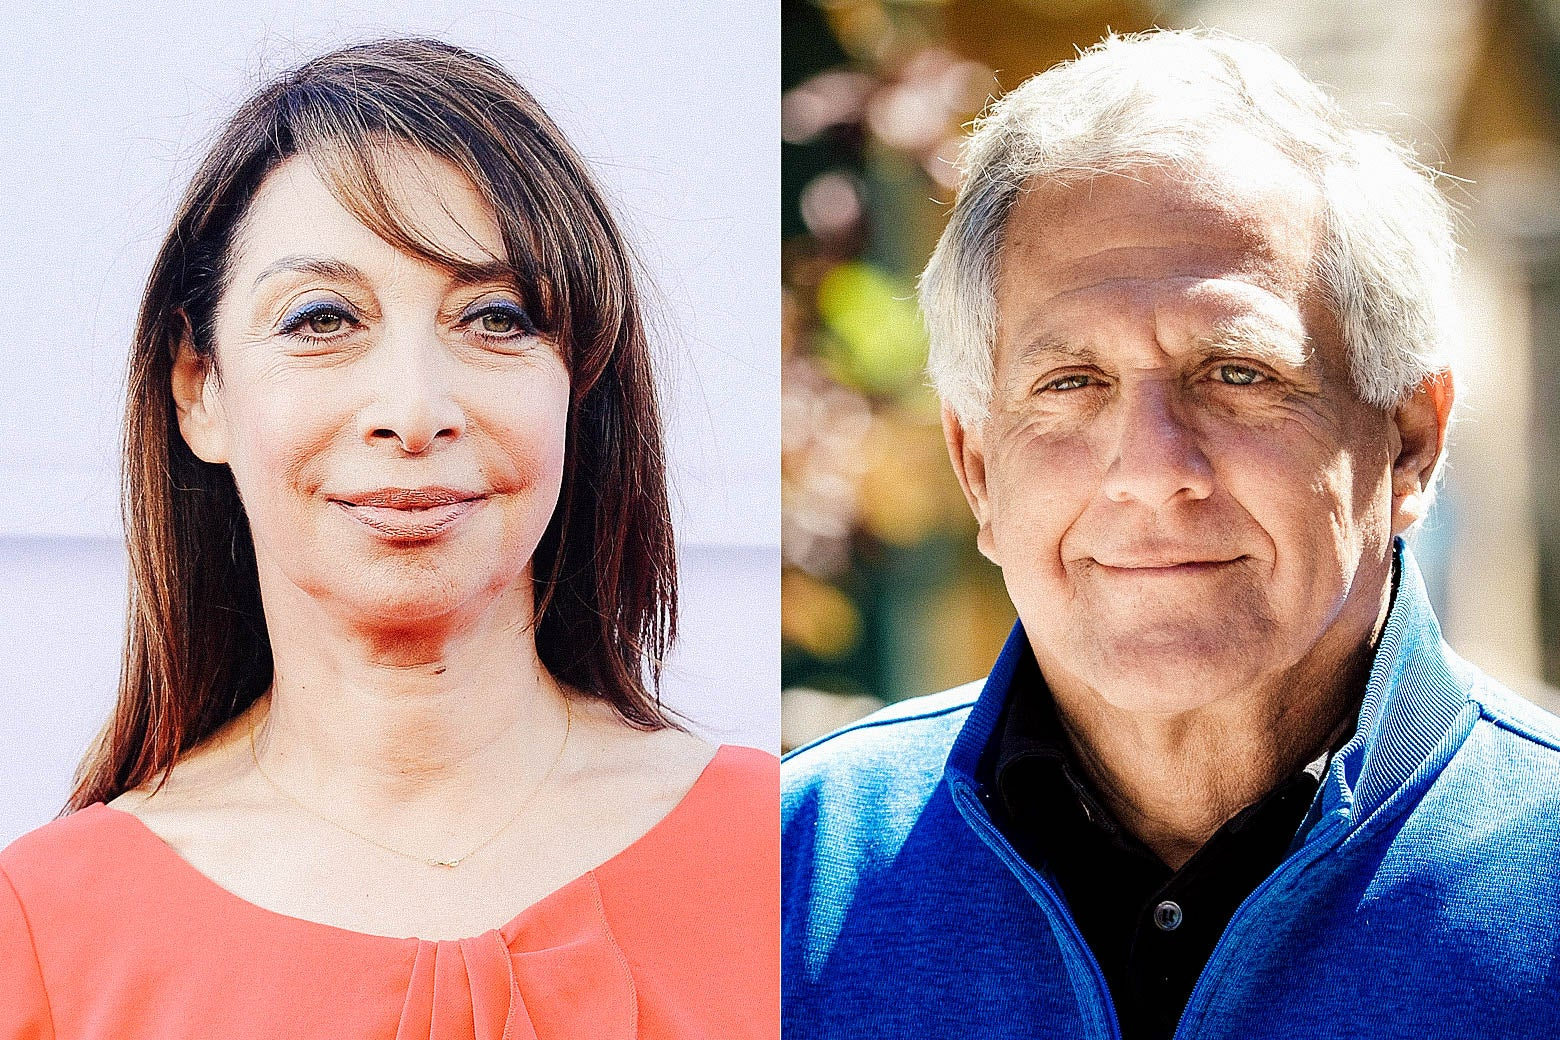 A side-by-side photo of Illeana Douglas and Les Moonves.